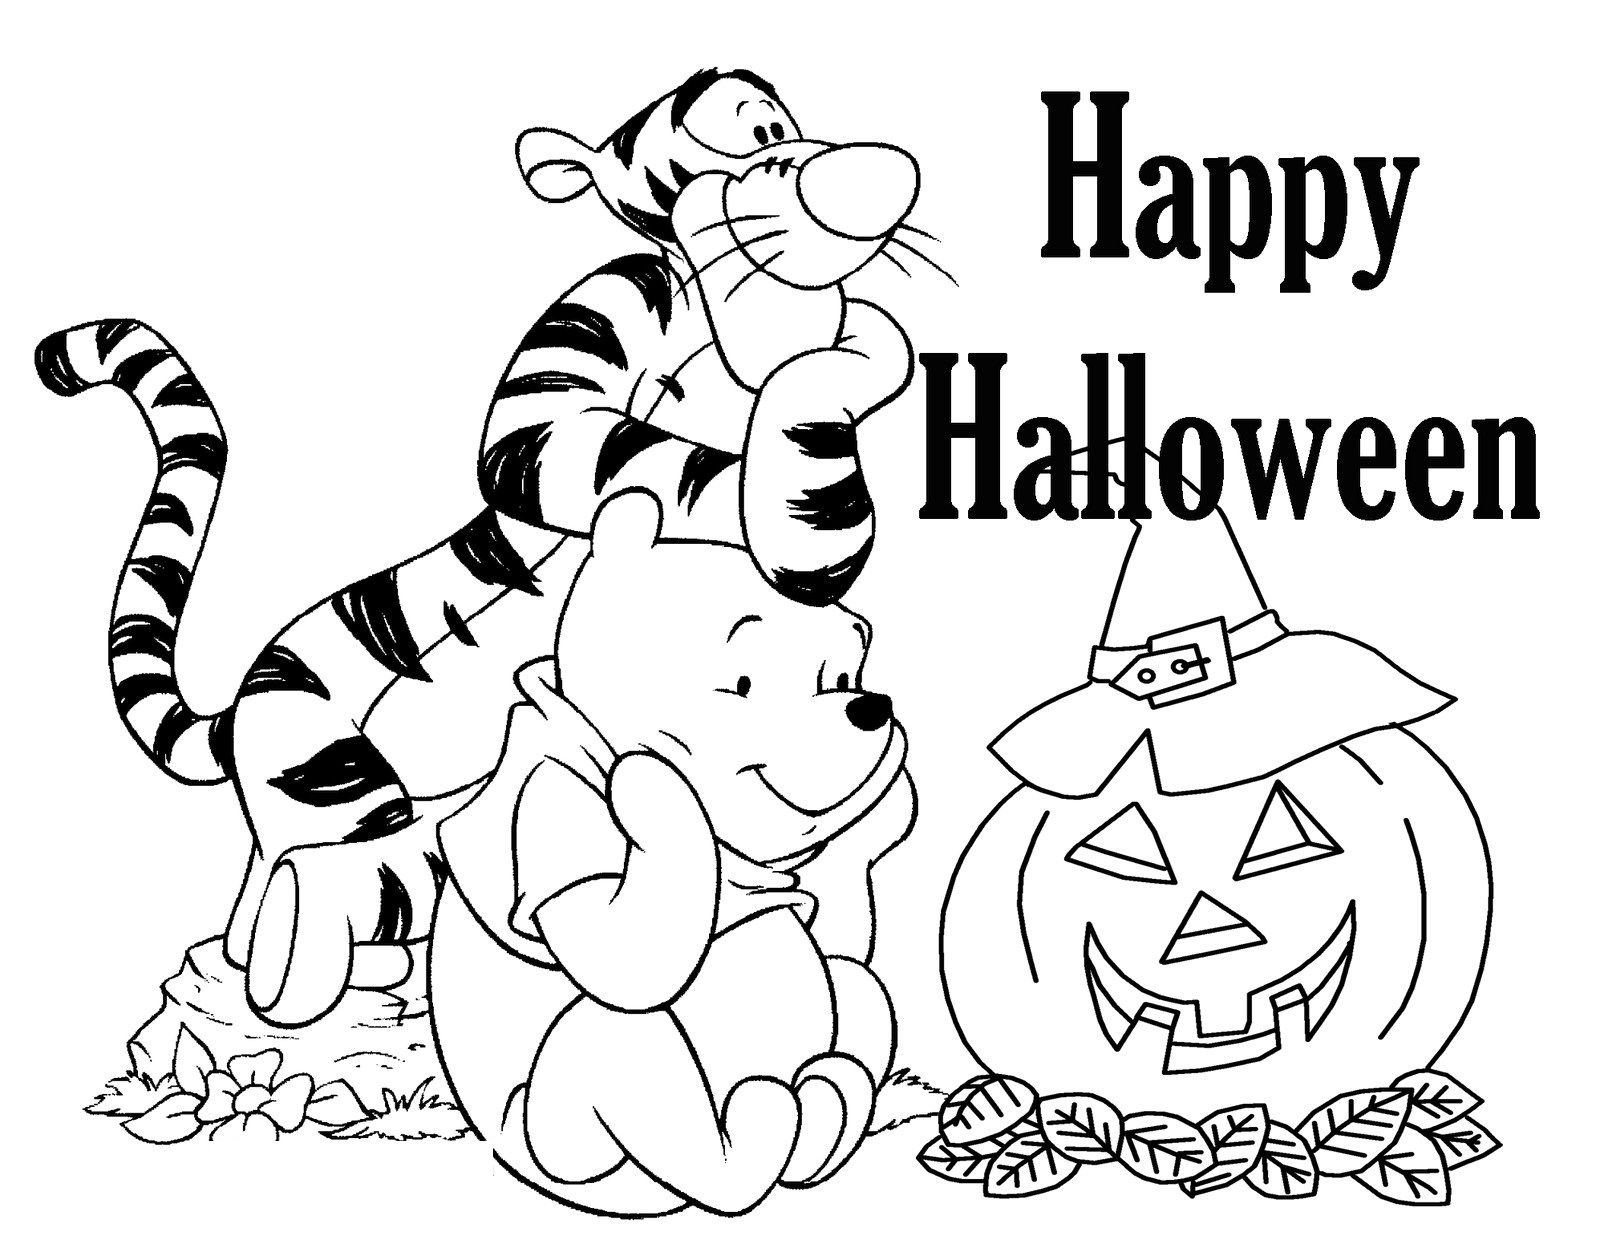 Halloween Coloring Pages For Kids Adults Free Printable